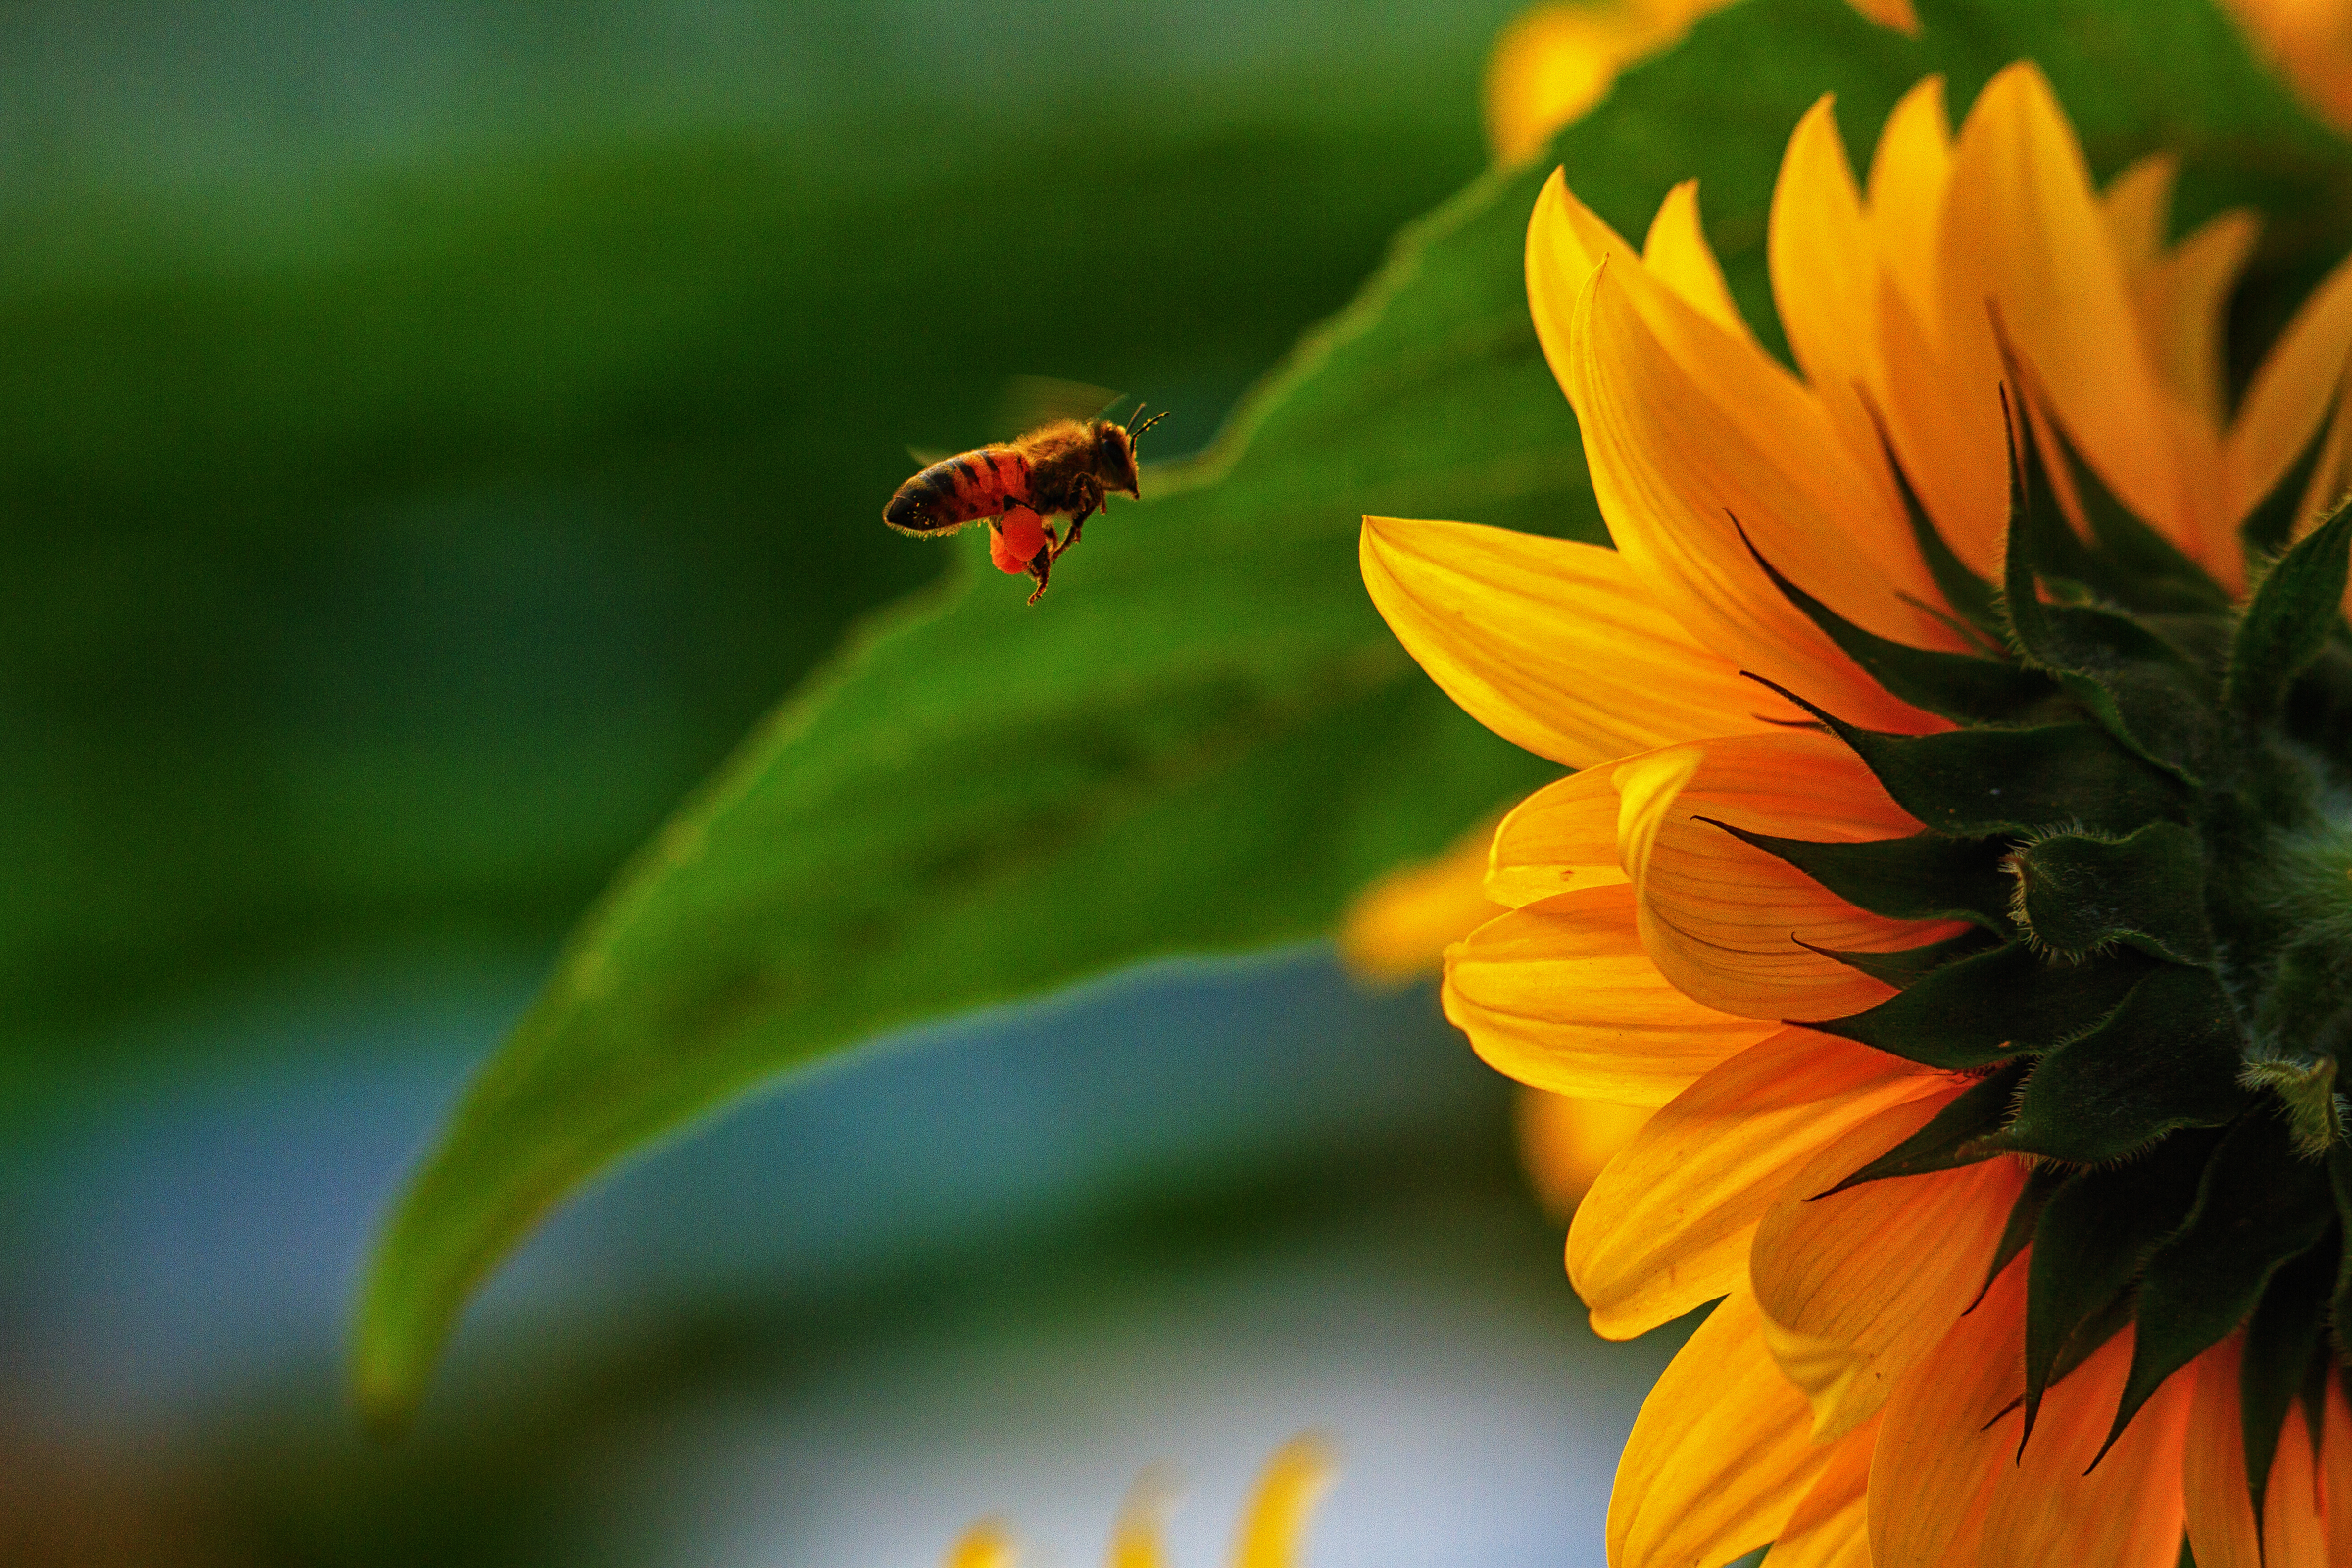 Libby_Volgyes_018_farm_photography_palm_beach_county_bee_sunflower_pollinate.jpg